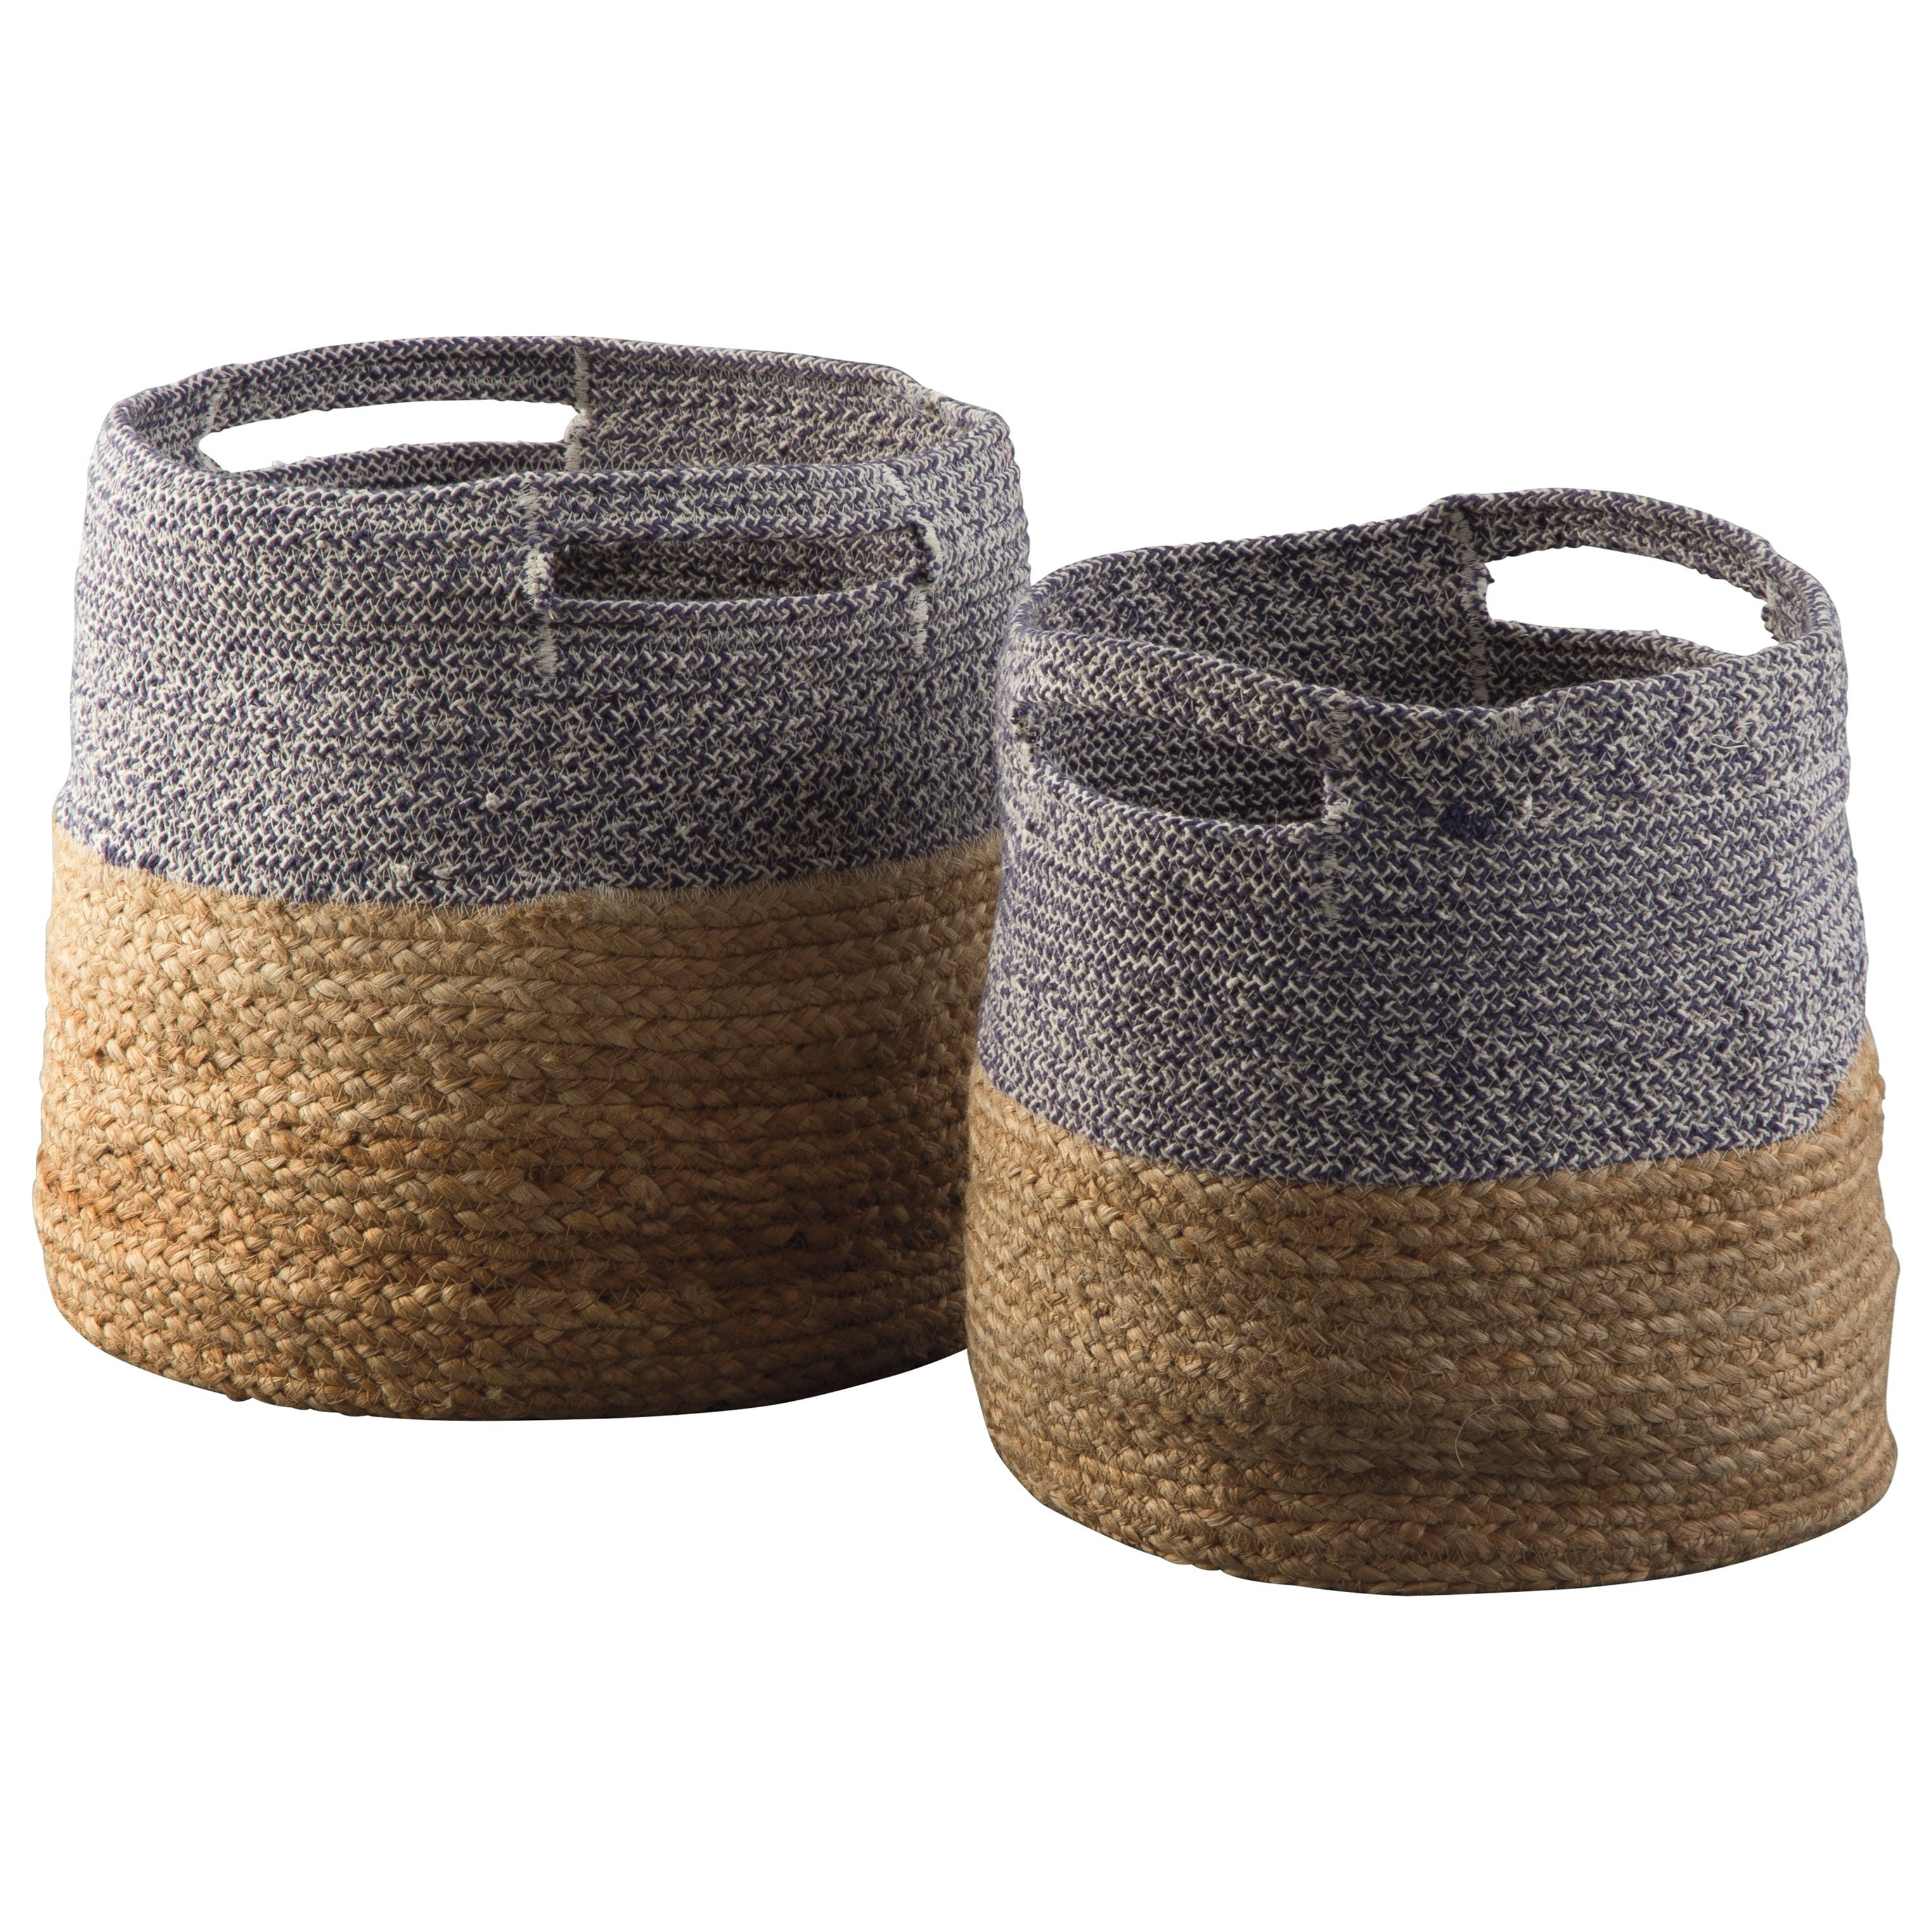 Accents Parrish Natural/Blue Basket Set by Signature Design by Ashley at Catalog Outlet